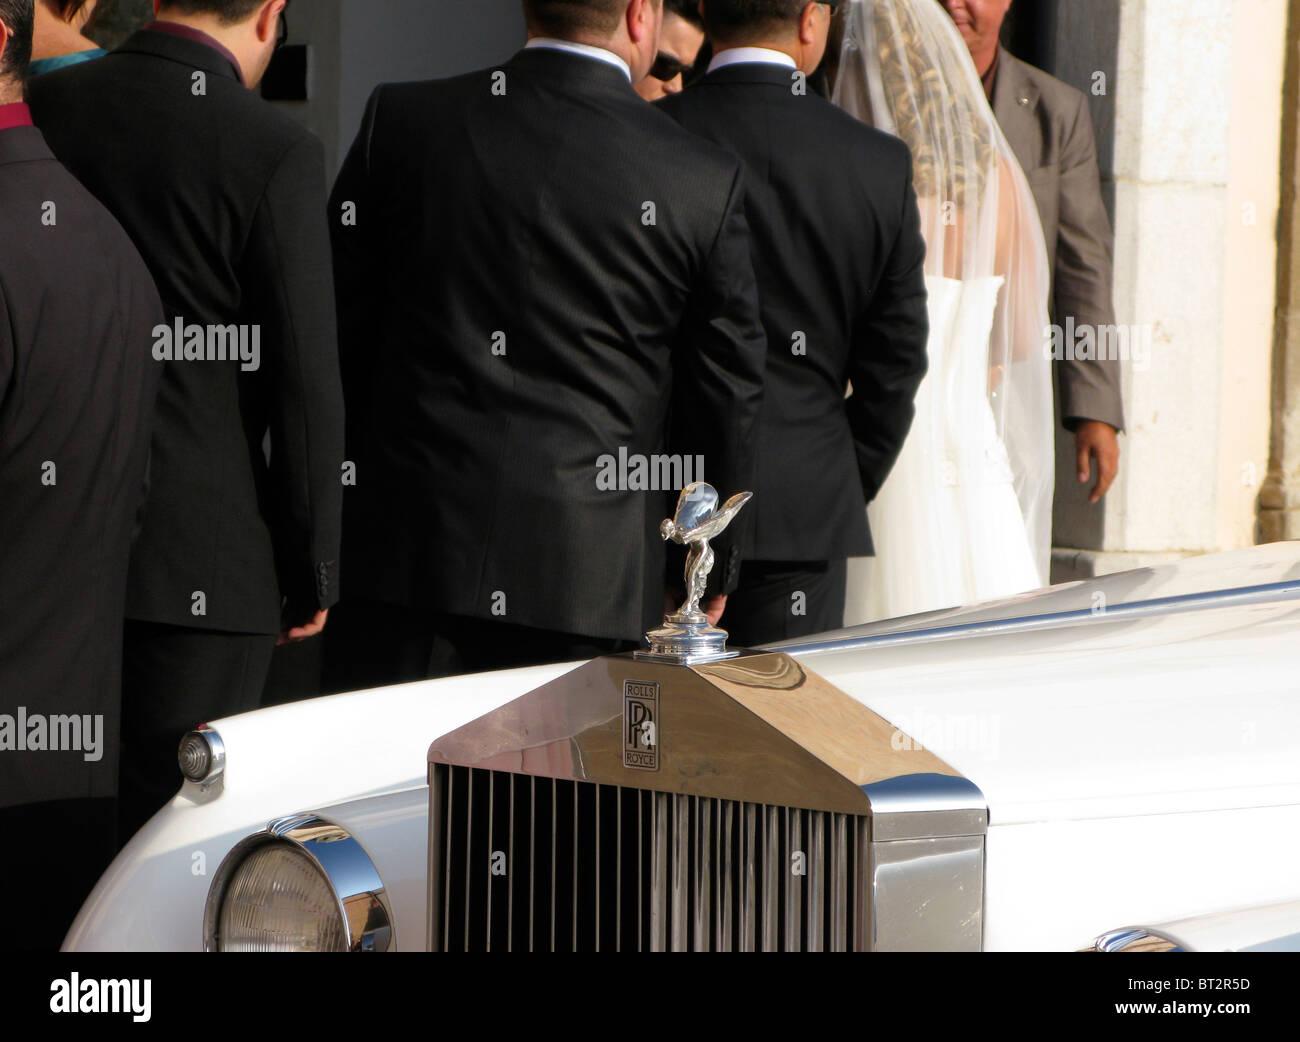 Rolls Royce wedding social status symbol rich richness upper class - Stock Image